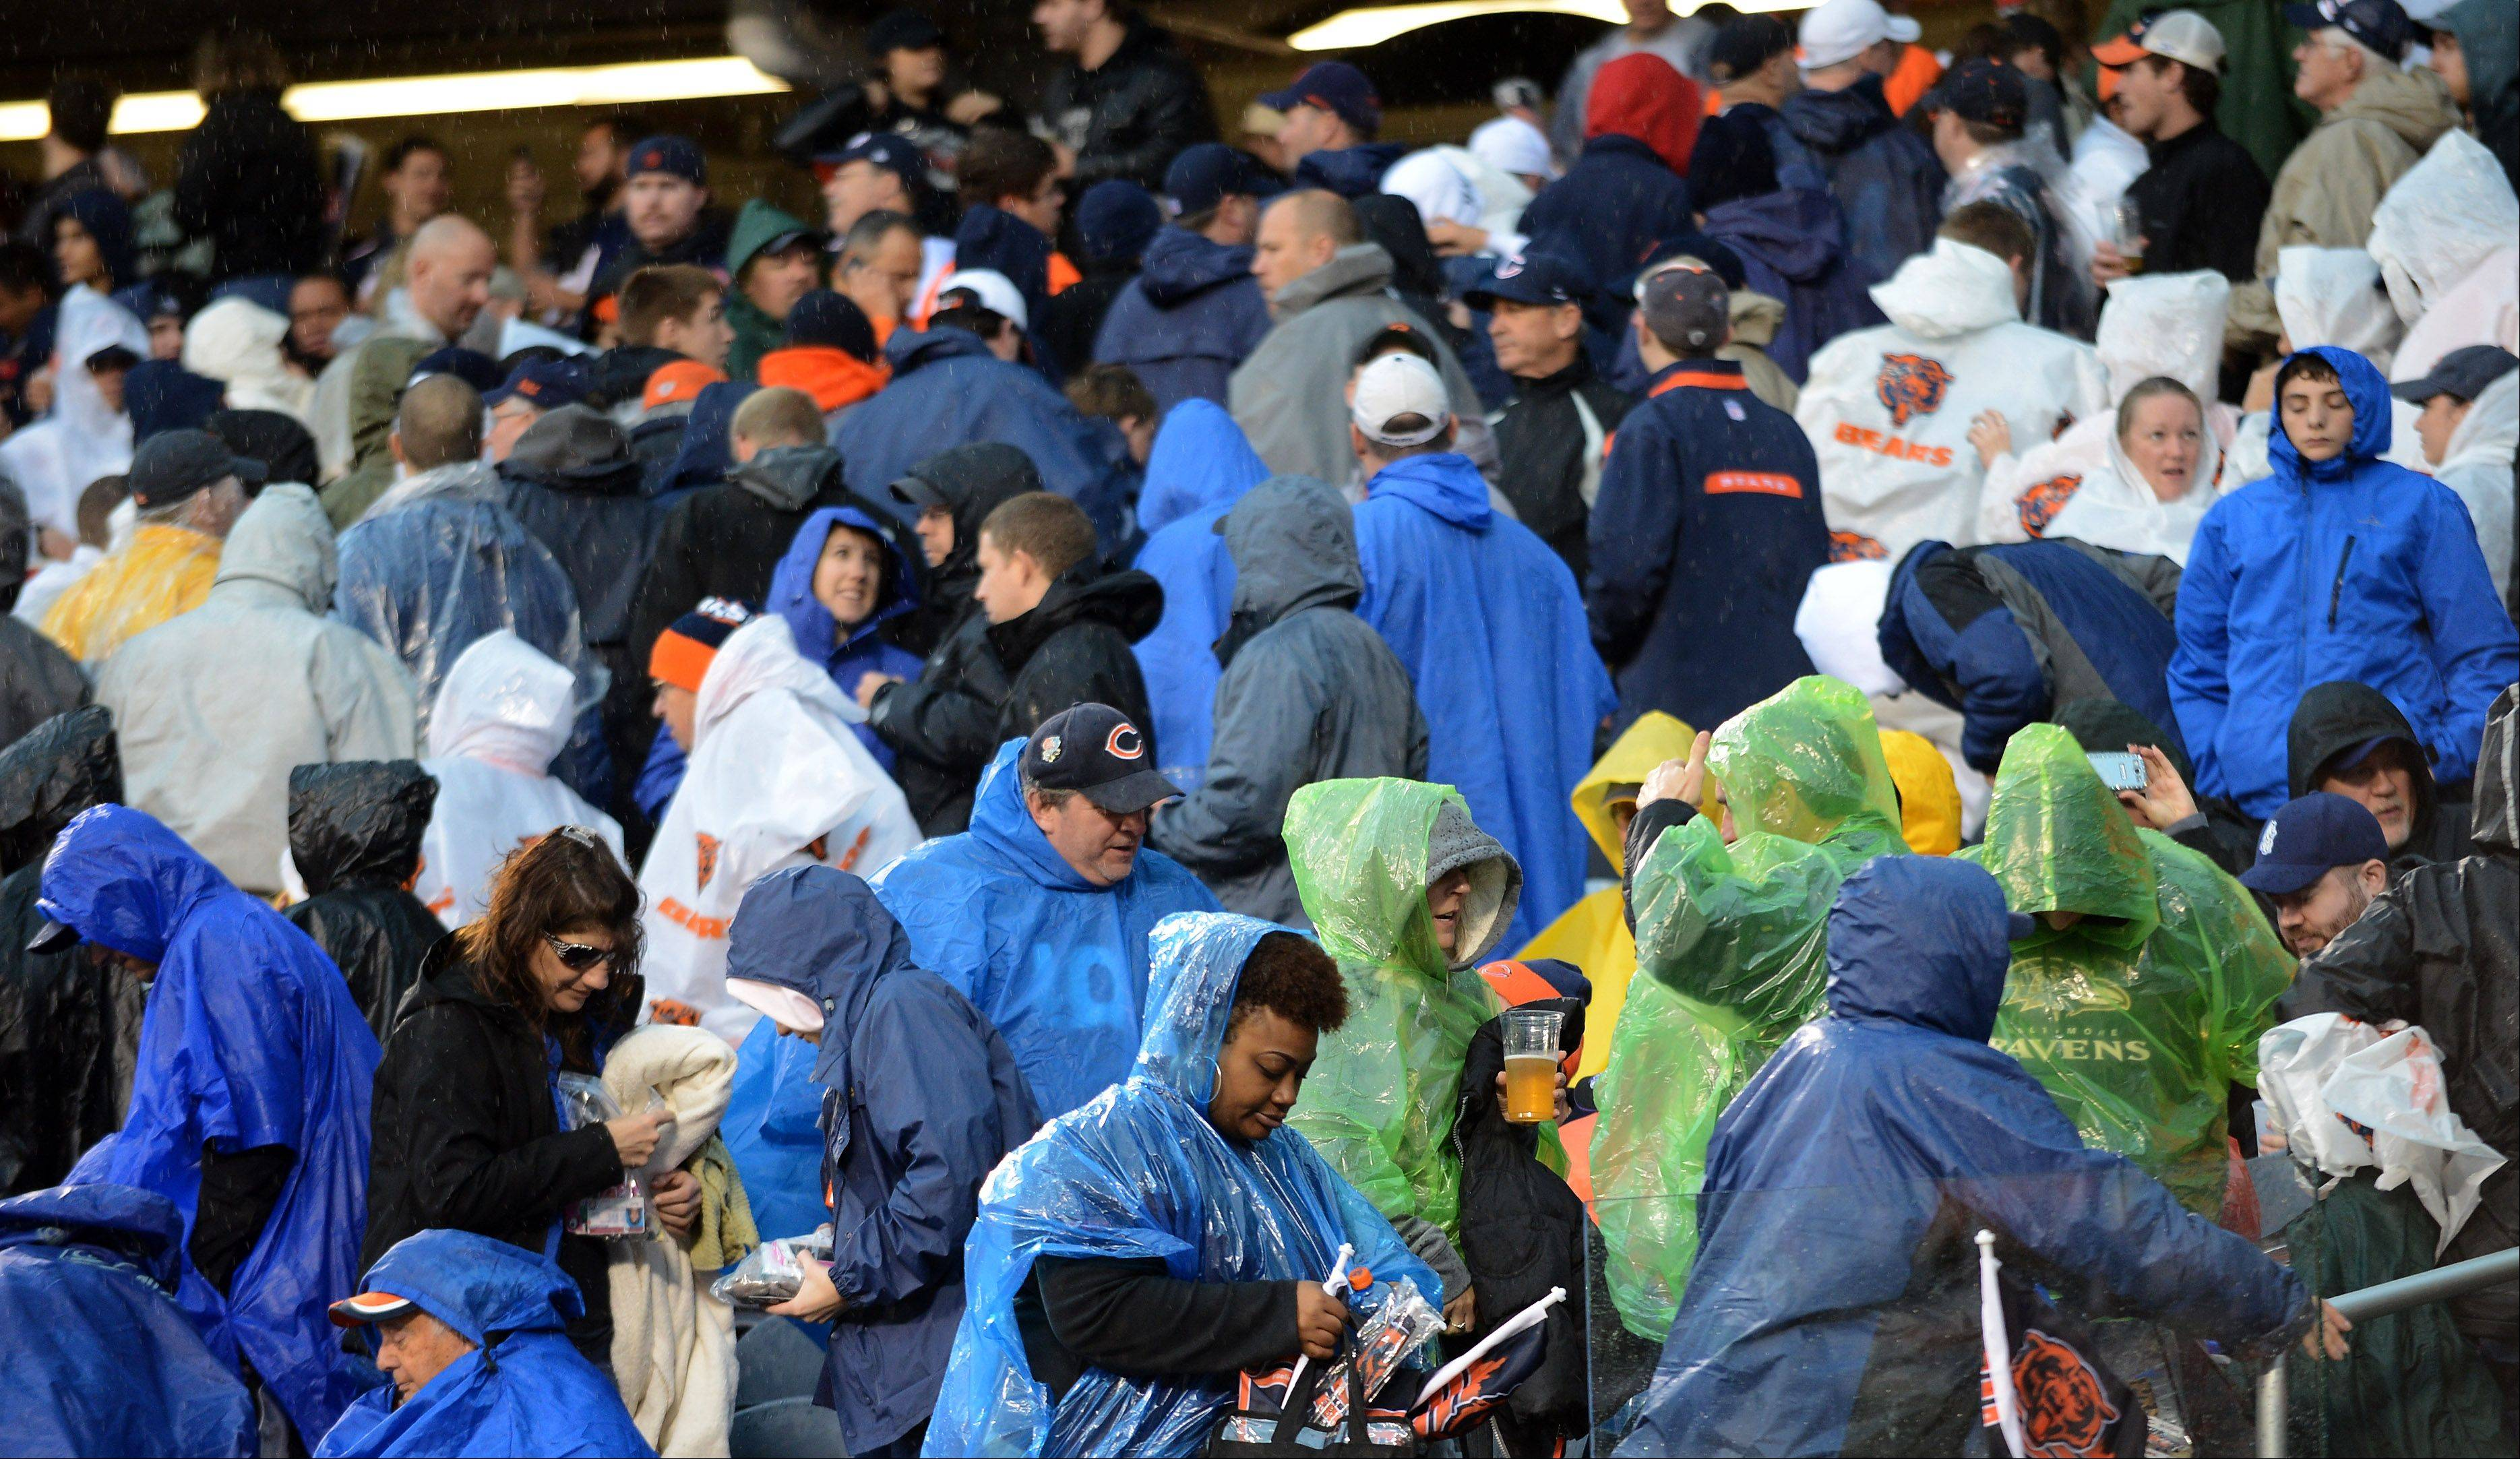 Fans head for the exits as the Bears game is delayed due to dangerous weather Sunday in Chicago.